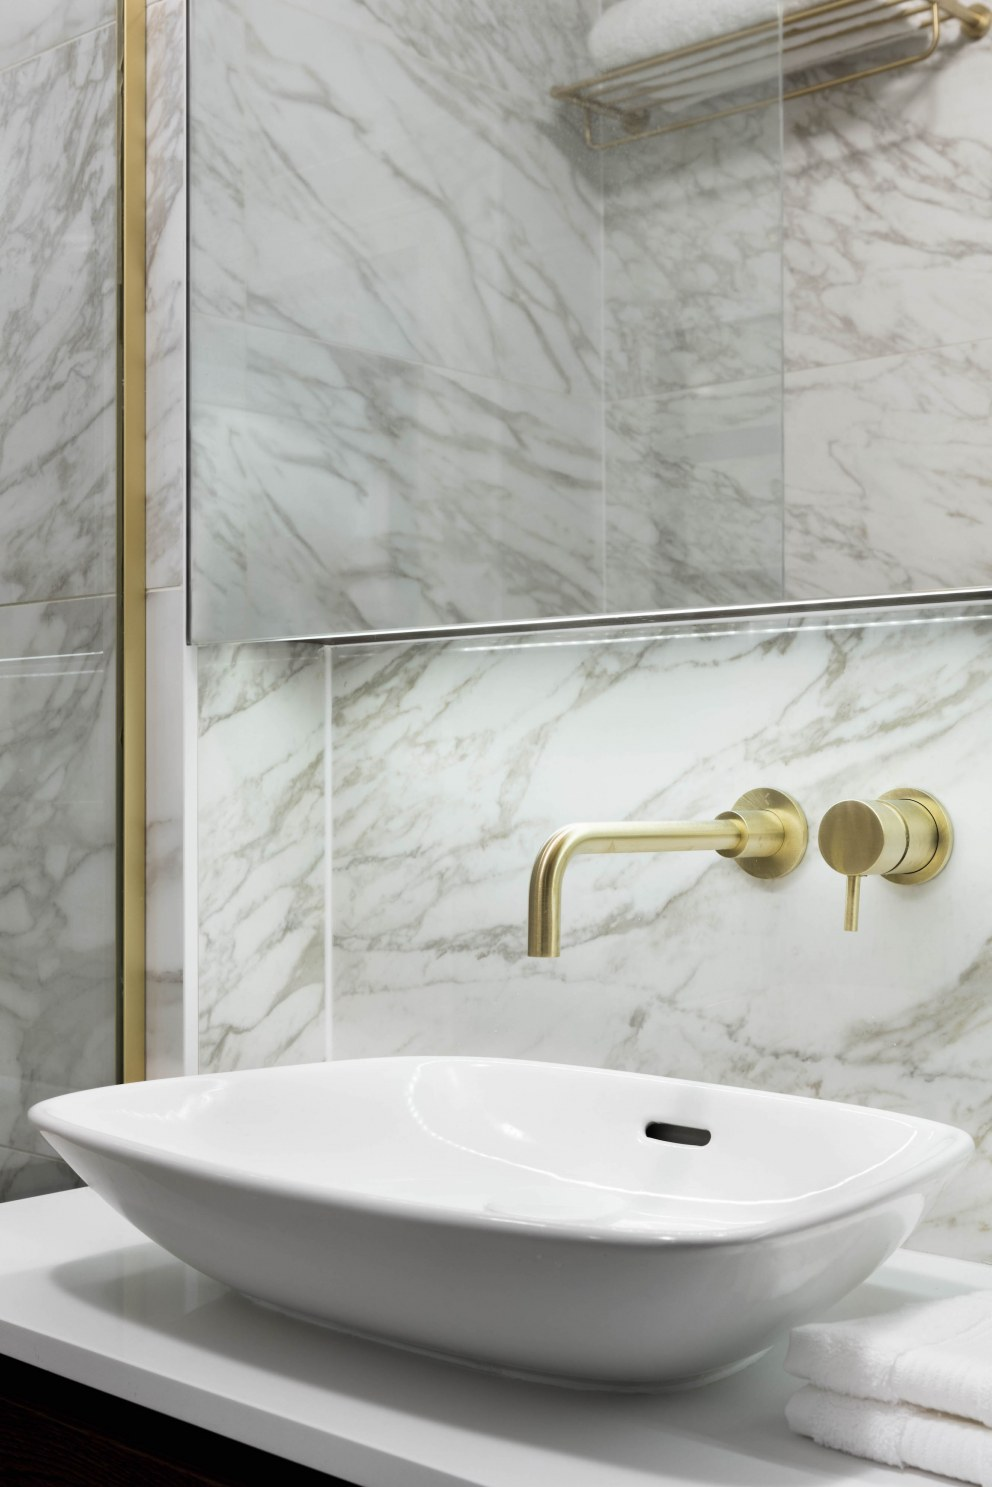 London Pied a terre  | Bathroom Detail | Interior Designers